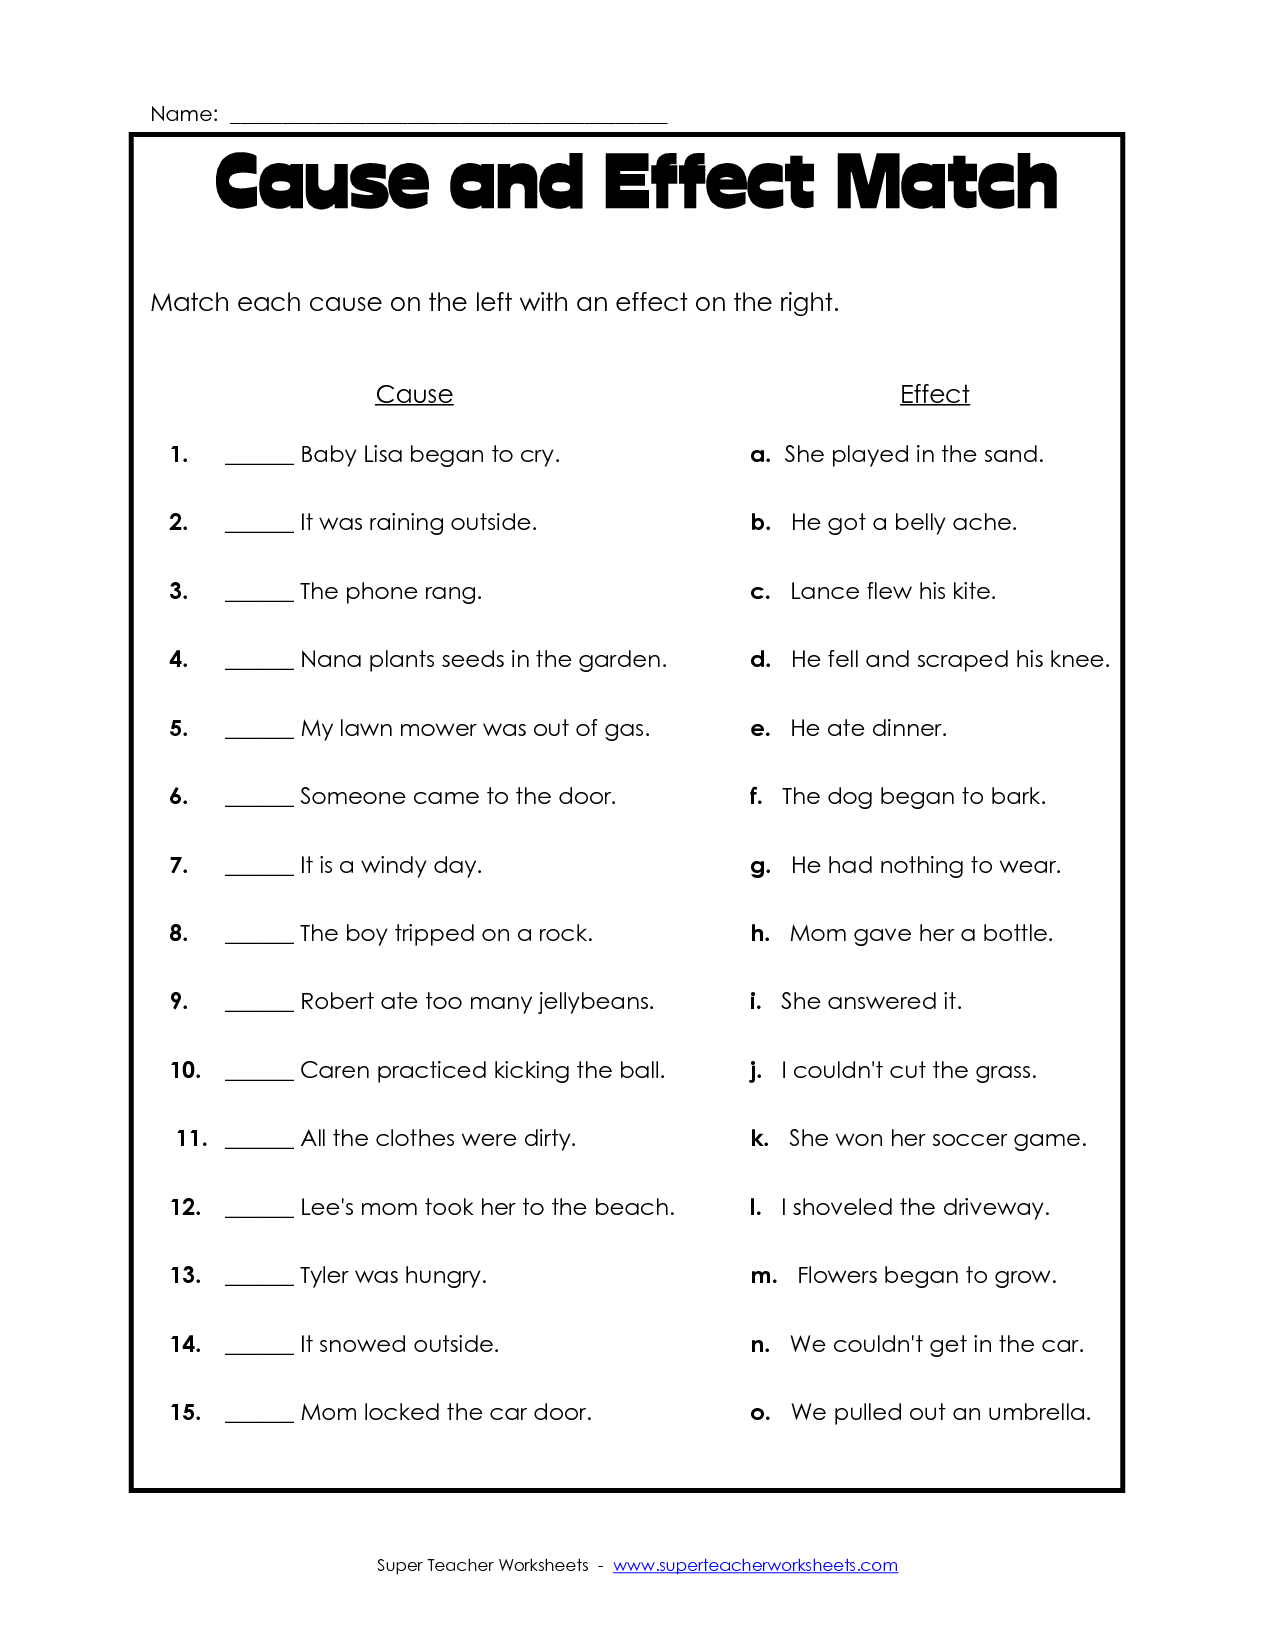 Cause And Effect Template Worksheets   Cause And Effect Worksheets   4th  grade reading worksheets [ 1650 x 1275 Pixel ]